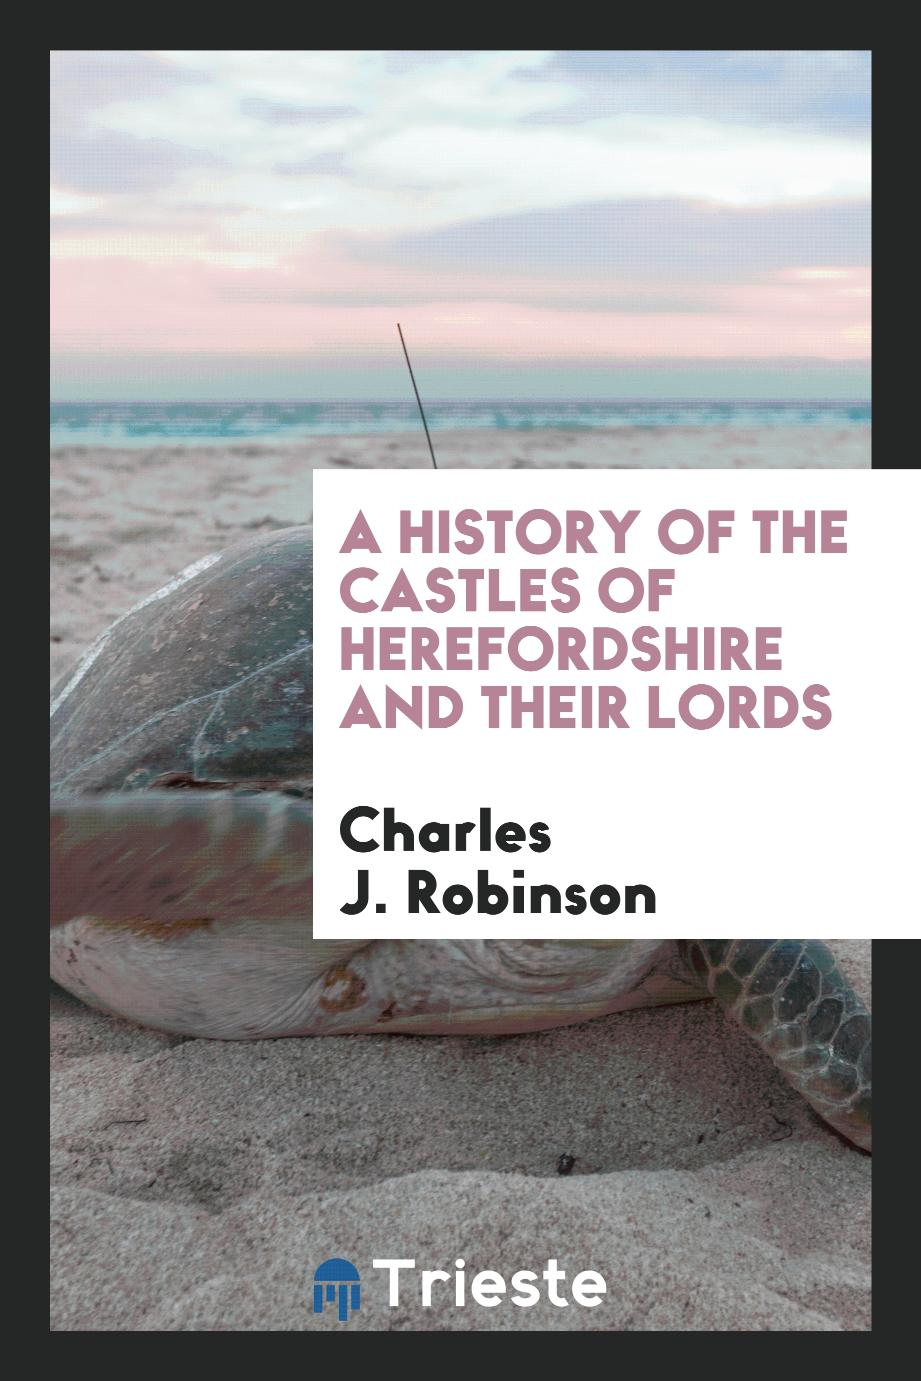 A History of the Castles of Herefordshire and Their Lords